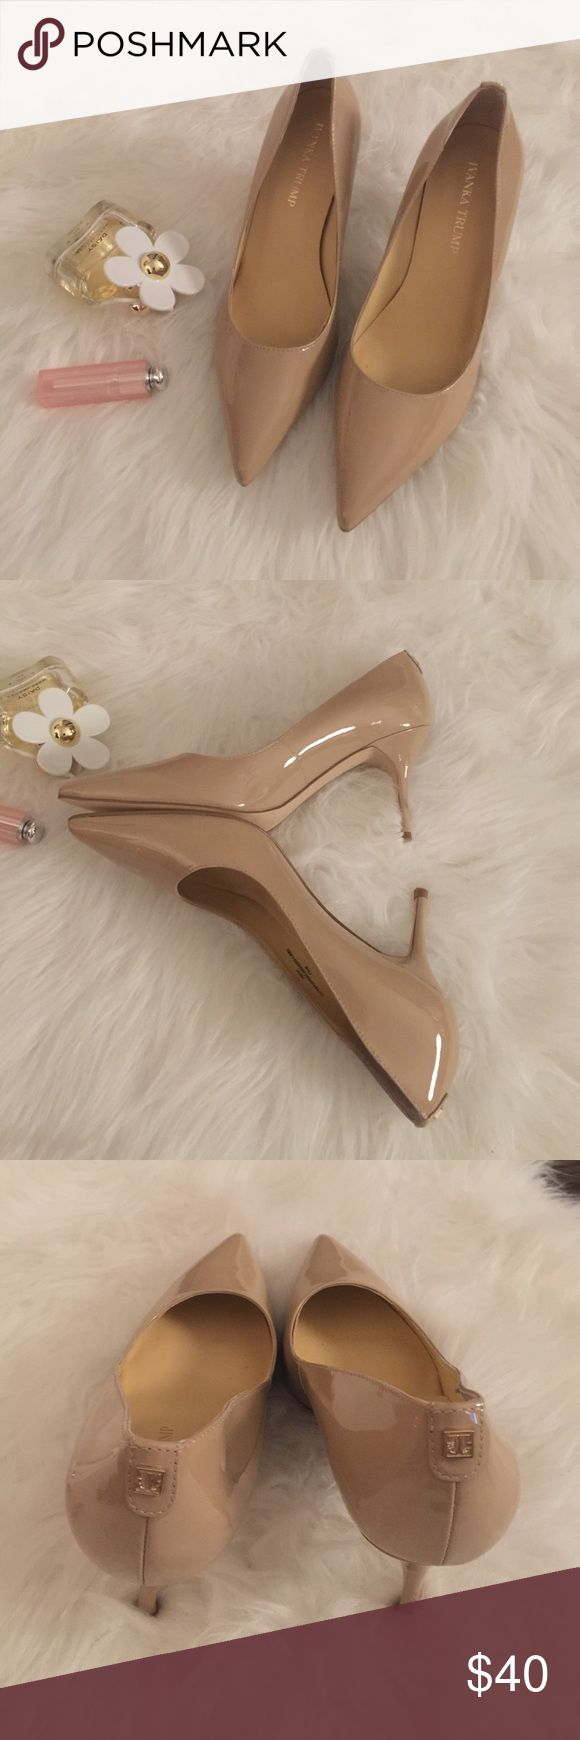 Ivanka trump nude pumps Very adorable pointy heels. Very easy to work and goes with everything. Heels are about 3 inches. Only tried on carpet. Basically new originally $109 pre tax Ivanka Trump Shoes